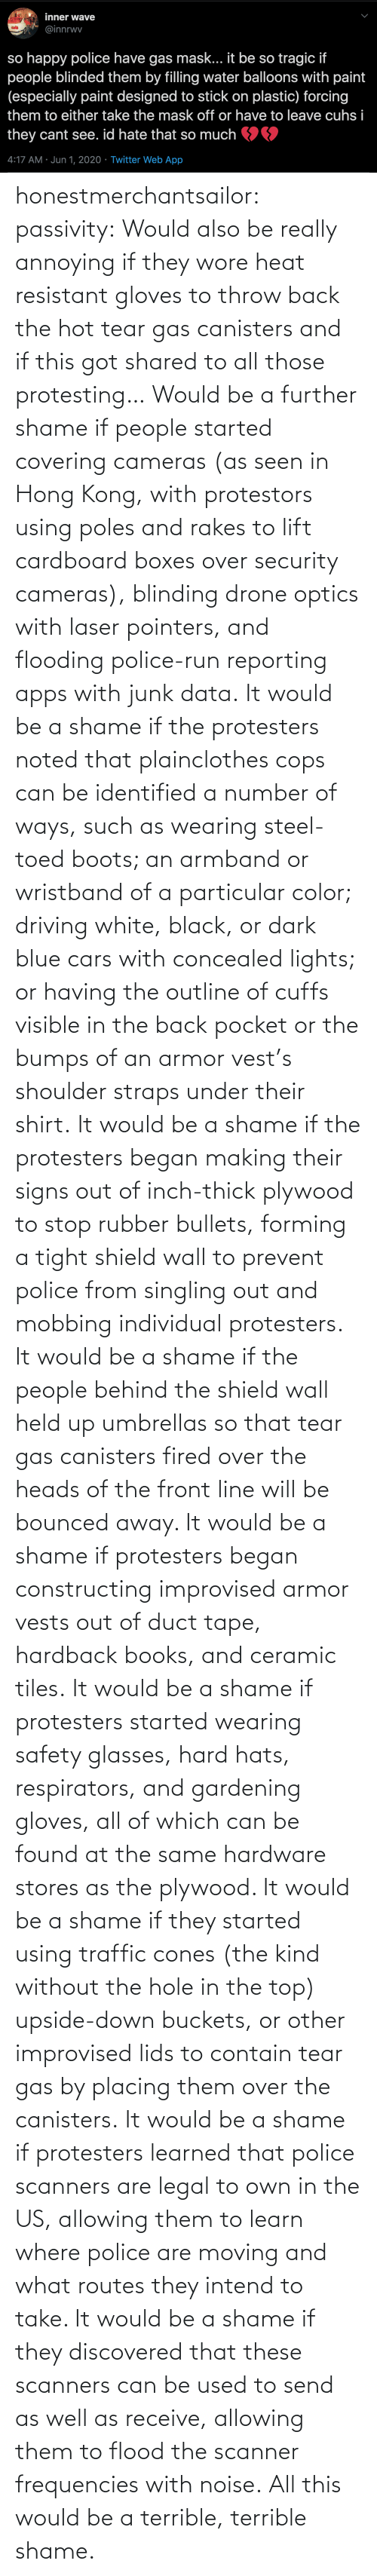 Run: honestmerchantsailor: passivity: Would also be really annoying if they wore heat resistant gloves to throw back the hot tear gas canisters and if this got shared to all those protesting… Would be a further shame if people started covering cameras (as seen in Hong Kong, with protestors using poles and rakes to lift cardboard boxes over security cameras), blinding drone optics with laser pointers, and flooding police-run reporting apps with junk data. It would be a shame if the protesters noted that plainclothes cops can be identified a number of ways, such as wearing steel-toed boots; an armband or wristband of a particular color; driving white, black, or dark blue cars with concealed lights; or having the outline of cuffs visible in the back pocket or the bumps of an armor vest's shoulder straps under their shirt. It would be a shame if the protesters began making their signs out of inch-thick plywood to stop rubber bullets, forming a tight shield wall to prevent police from singling out and mobbing individual protesters. It would be a shame if the people behind the shield wall held up umbrellas so that tear gas canisters fired over the heads of the front line will be bounced away. It would be a shame if protesters began constructing improvised armor vests out of duct tape, hardback books, and ceramic tiles. It would be a shame if protesters started wearing safety glasses, hard hats, respirators, and gardening gloves, all of which can be found at the same hardware stores as the plywood. It would be a shame if they started using traffic cones (the kind without the hole in the top) upside-down buckets, or other improvised lids to contain tear gas by placing them over the canisters. It would be a shame if protesters learned that police scanners are legal to own in the US, allowing them to learn where police are moving and what routes they intend to take. It would be a shame if they discovered that these scanners can be used to send as well as receive, allowing them to flood the scanner frequencies with noise. All this would be a terrible, terrible shame.